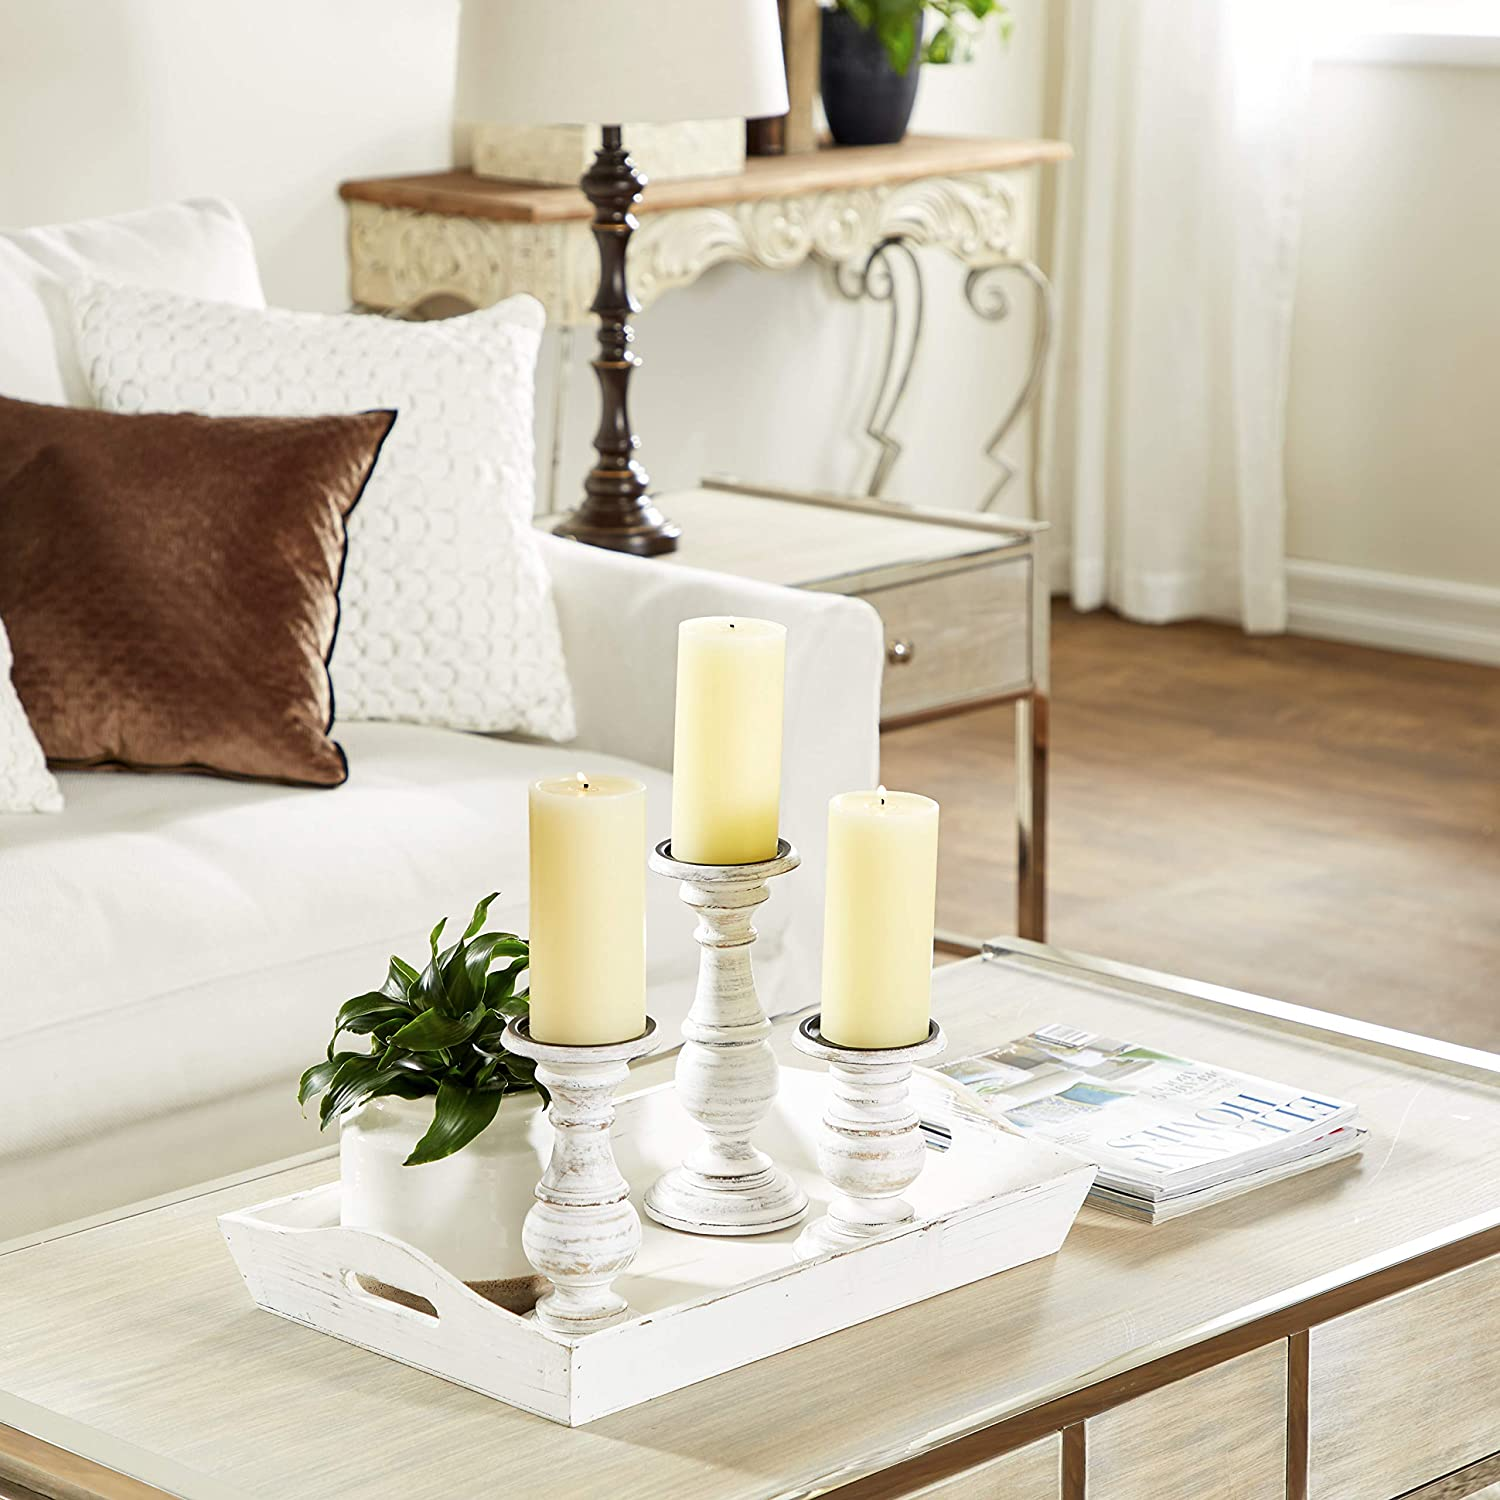 """Deco 79 Distressed White Wood Candle Holders with Spiked Candle Plates, Traditional Style Table Decor, White Candlesticks Accent Decor   Set of 3: 4"""", 6"""", 8"""""""